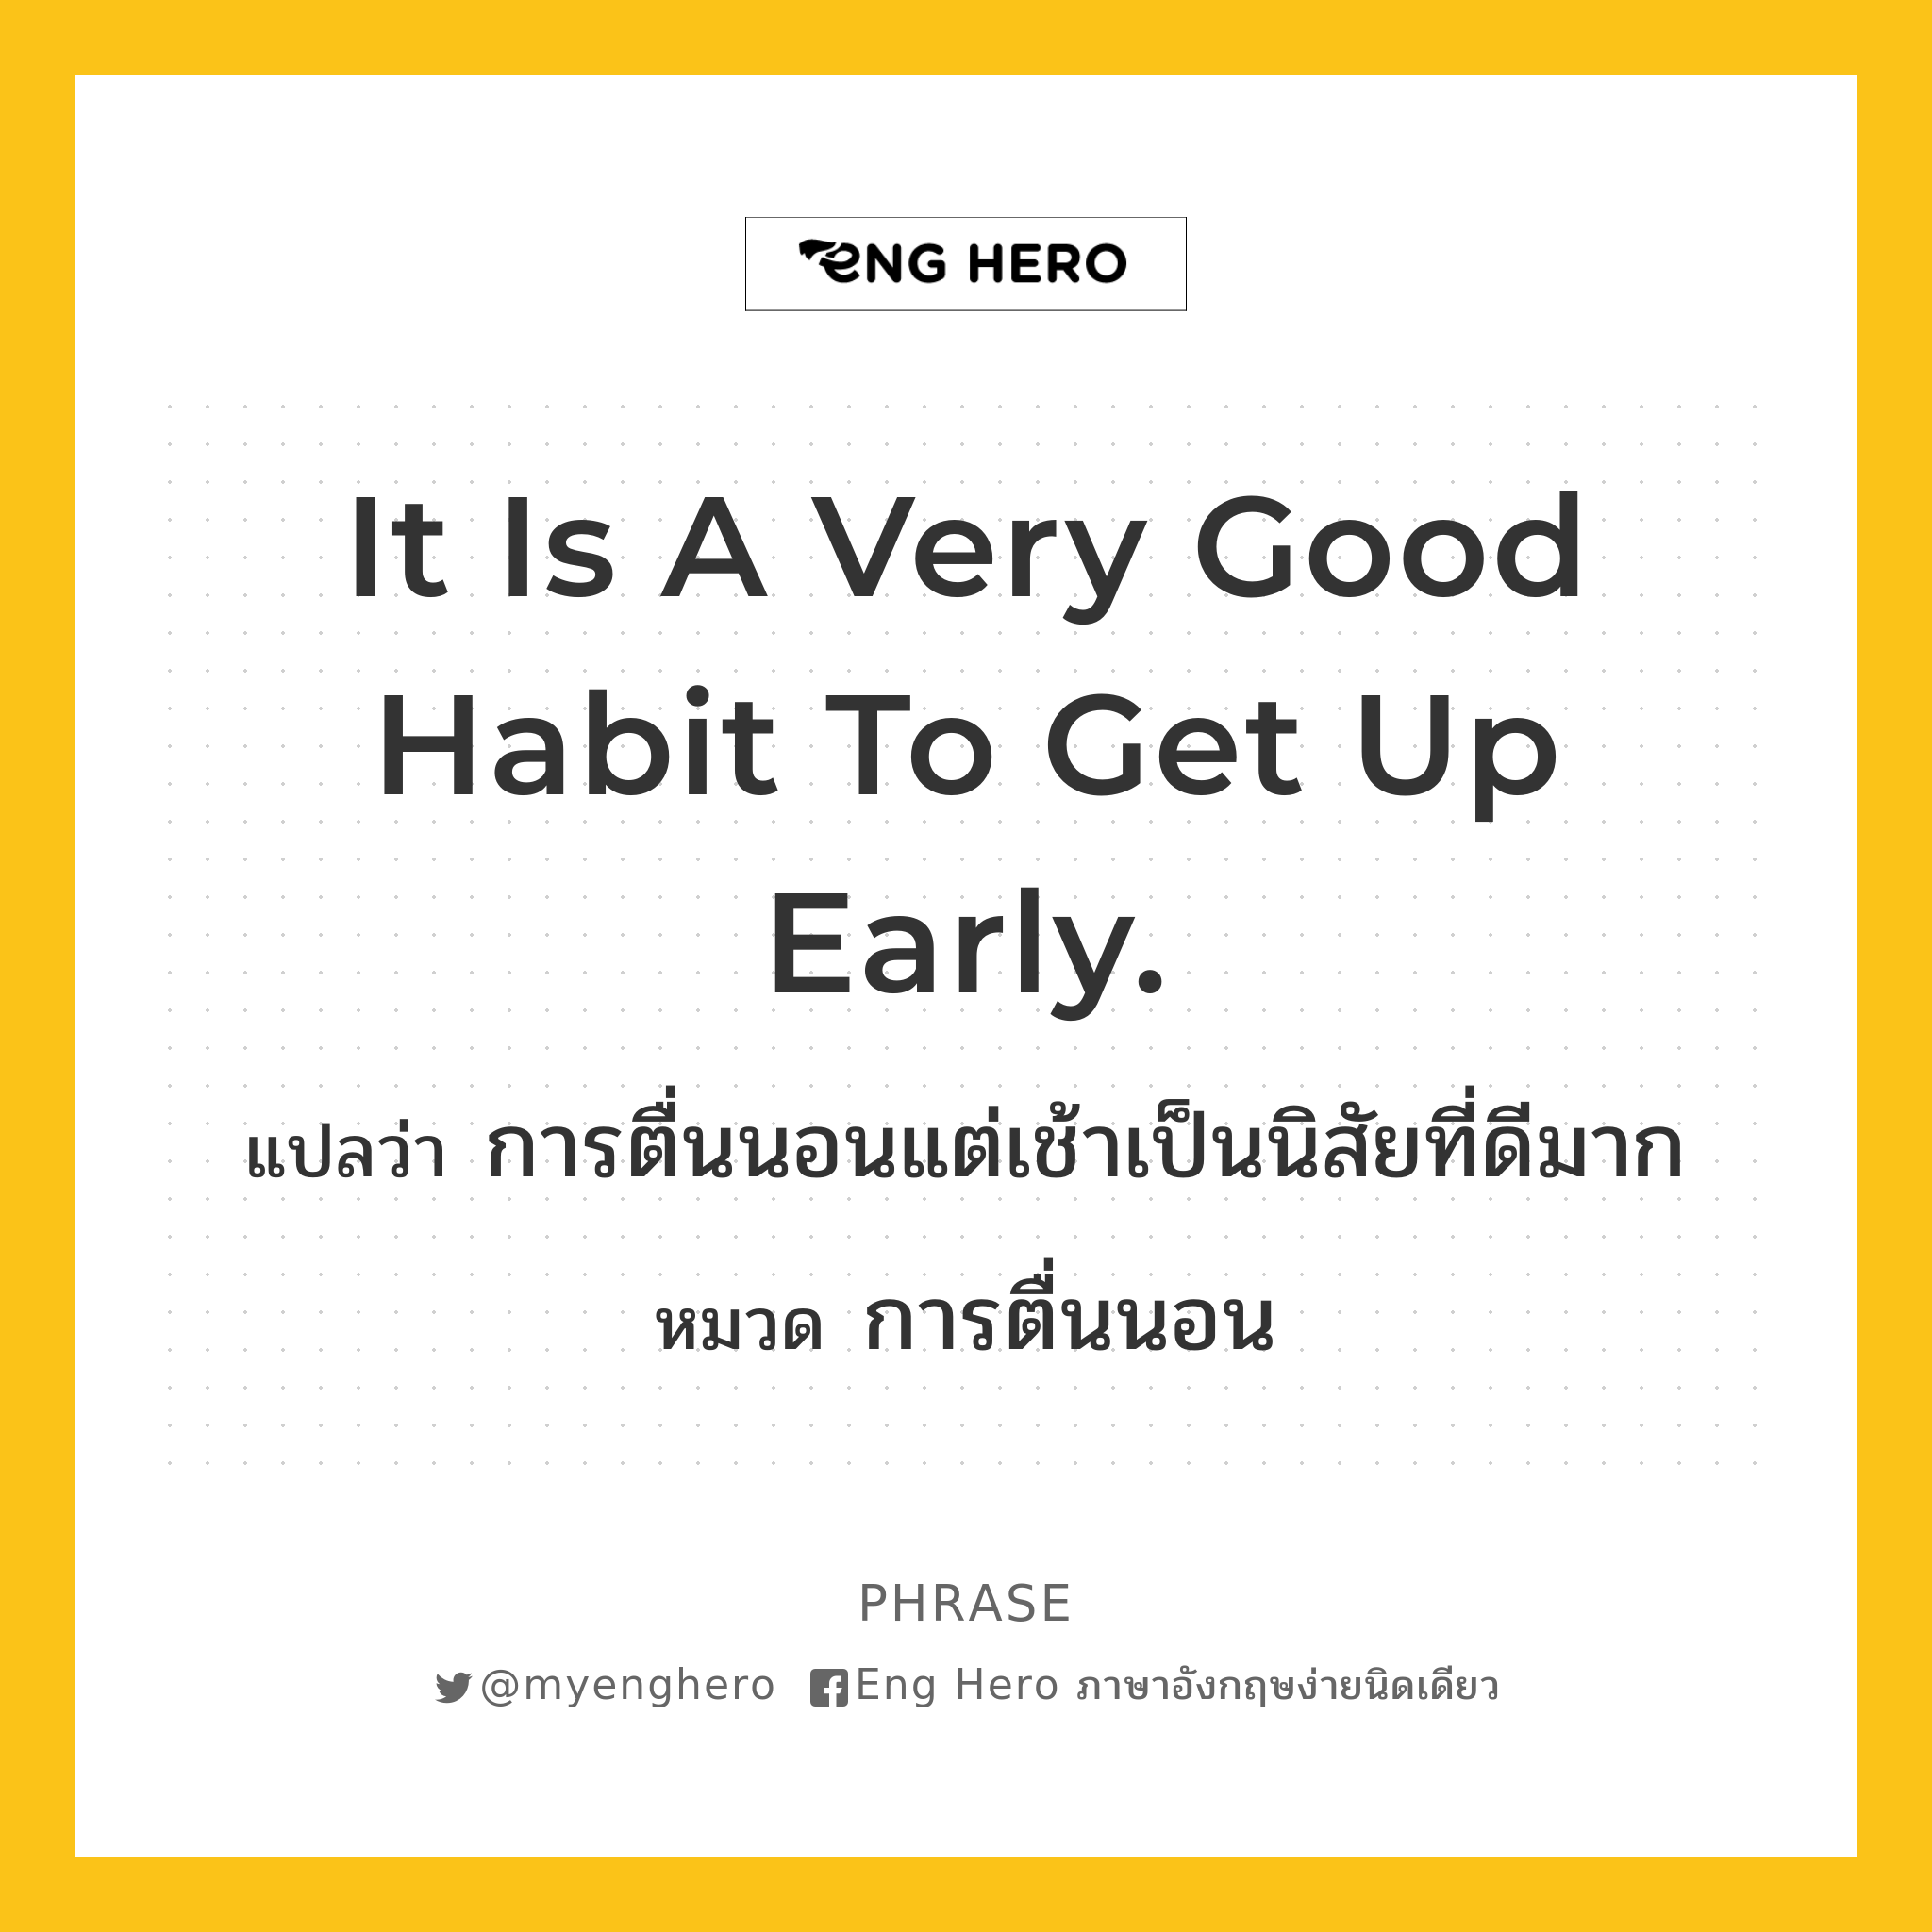 It is a very good habit to get up early.